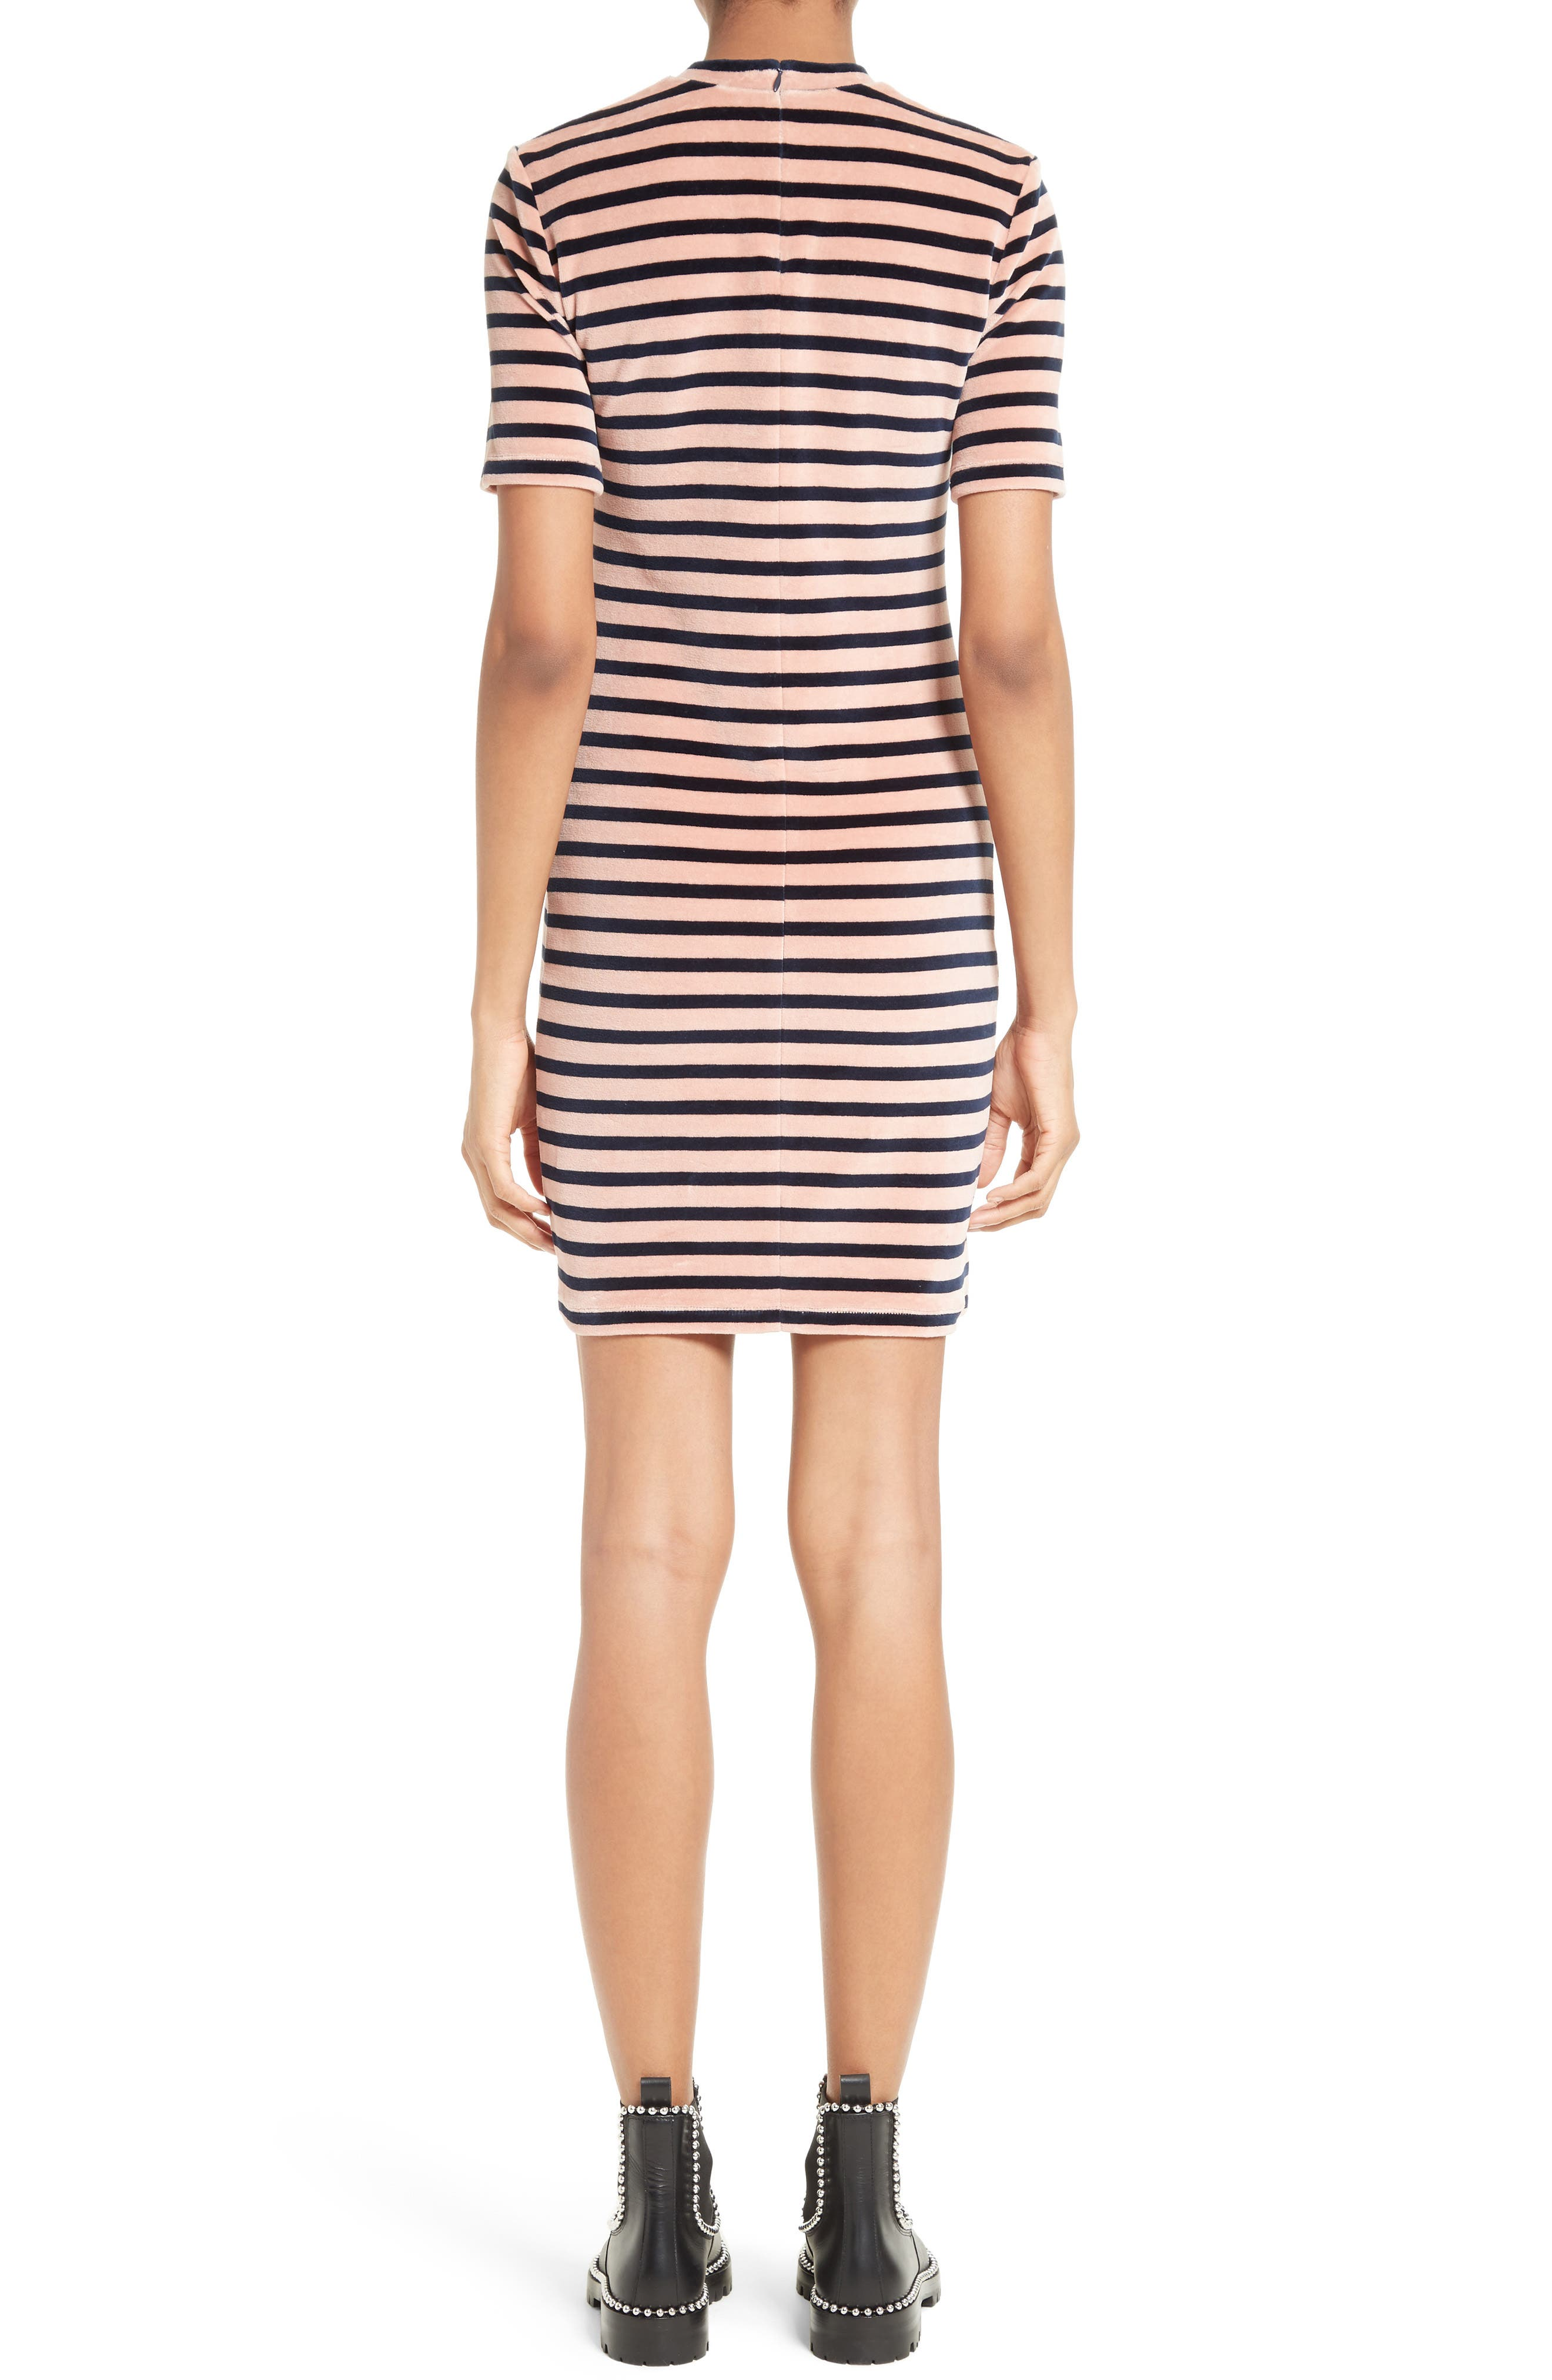 T by Alexander Wang Stripe Velvet Dress,                             Alternate thumbnail 2, color,                             401